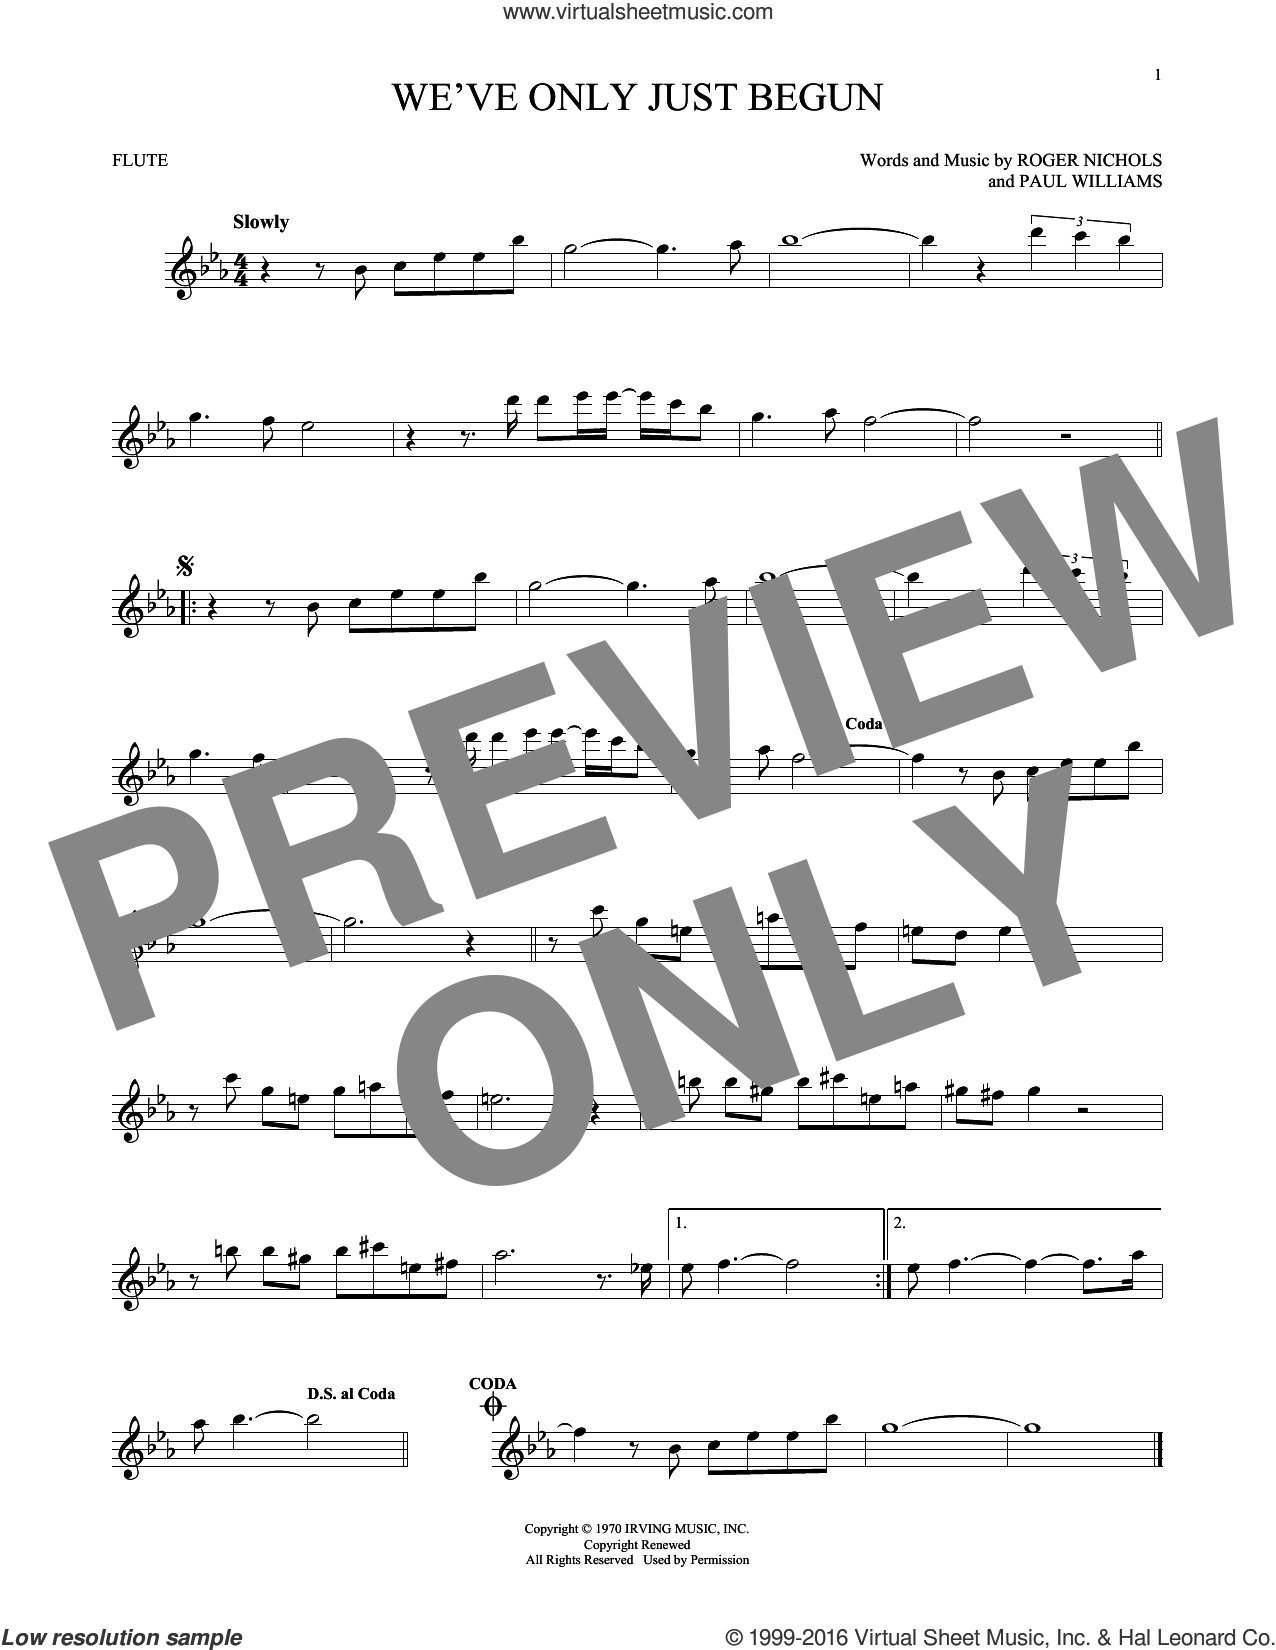 We've Only Just Begun sheet music for flute solo by Paul Williams, Carpenters and Roger Nichols, intermediate skill level